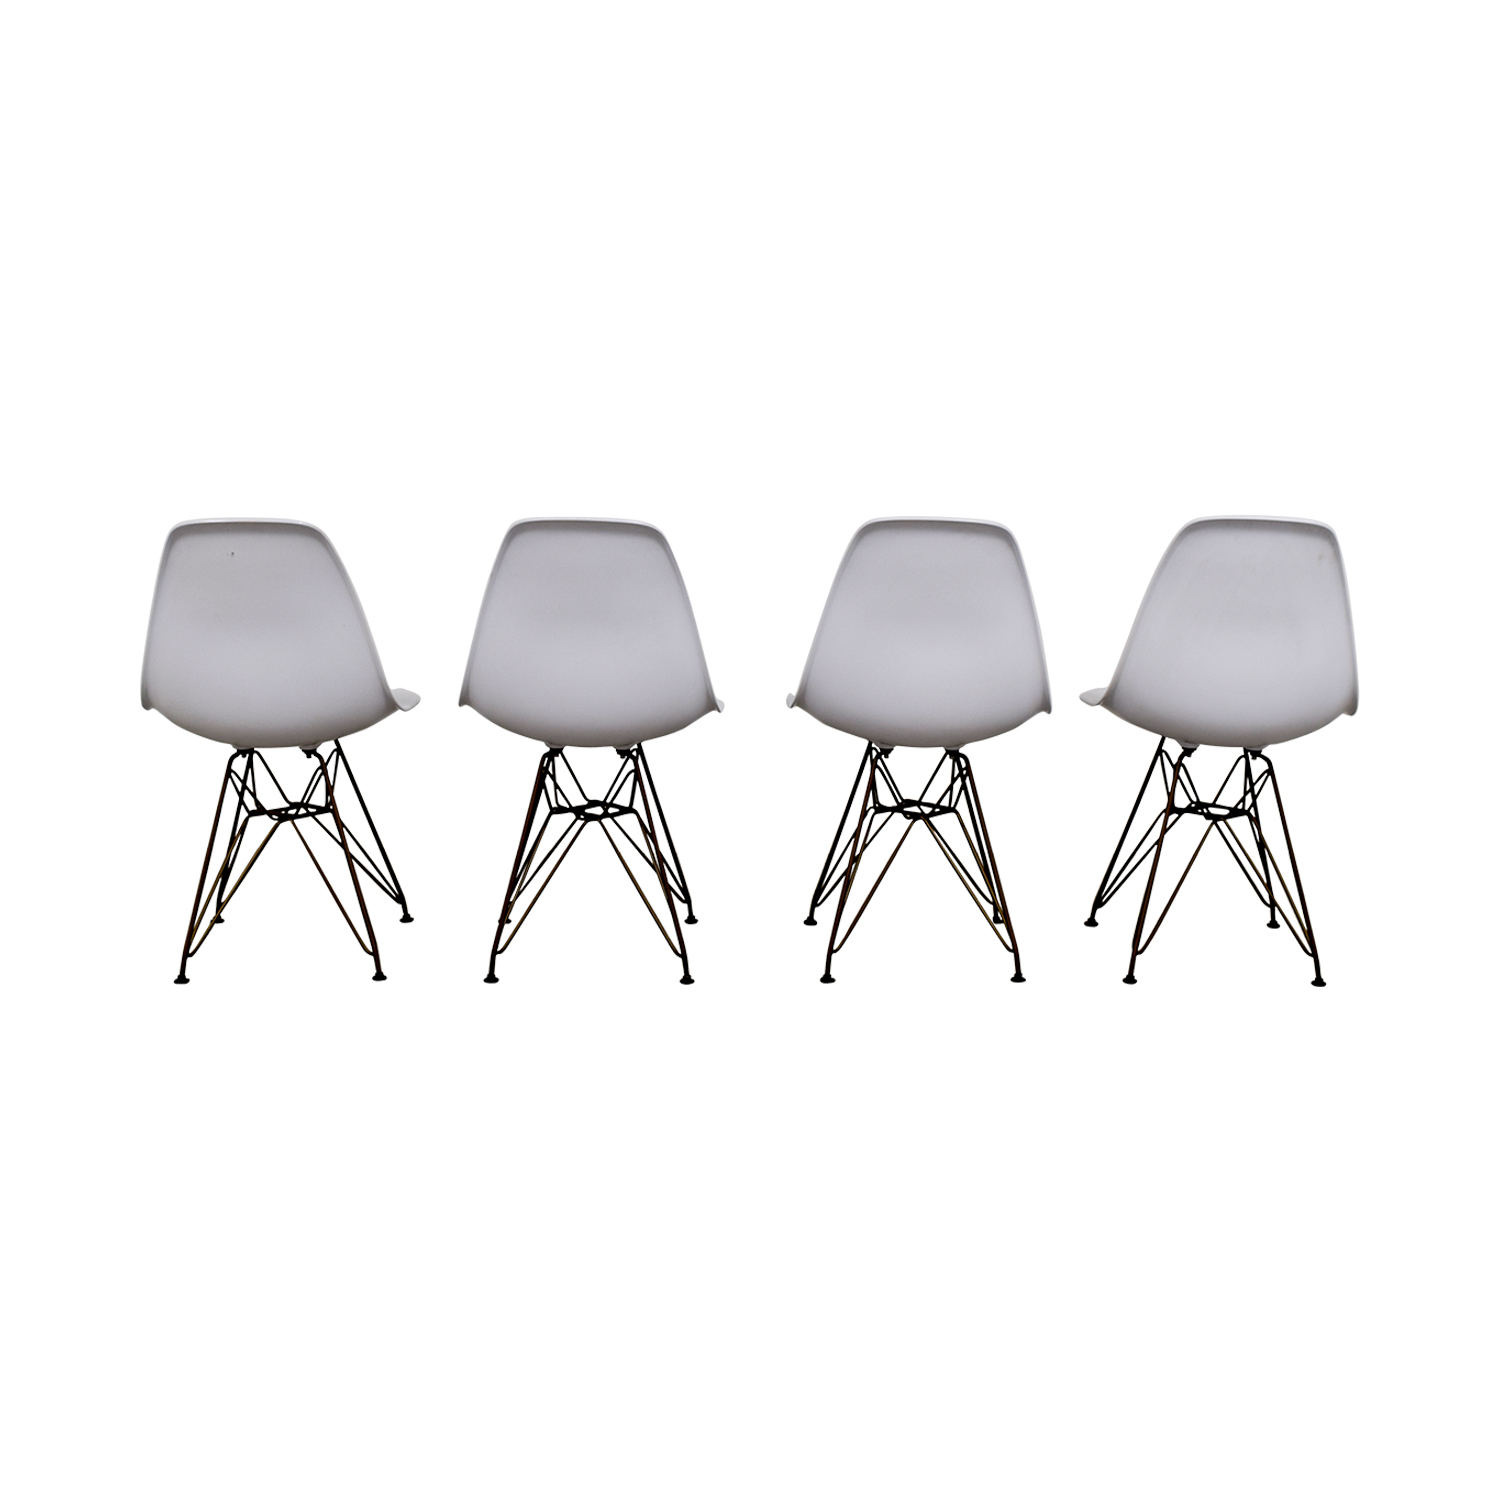 Junia White Side Chairs / Chairs